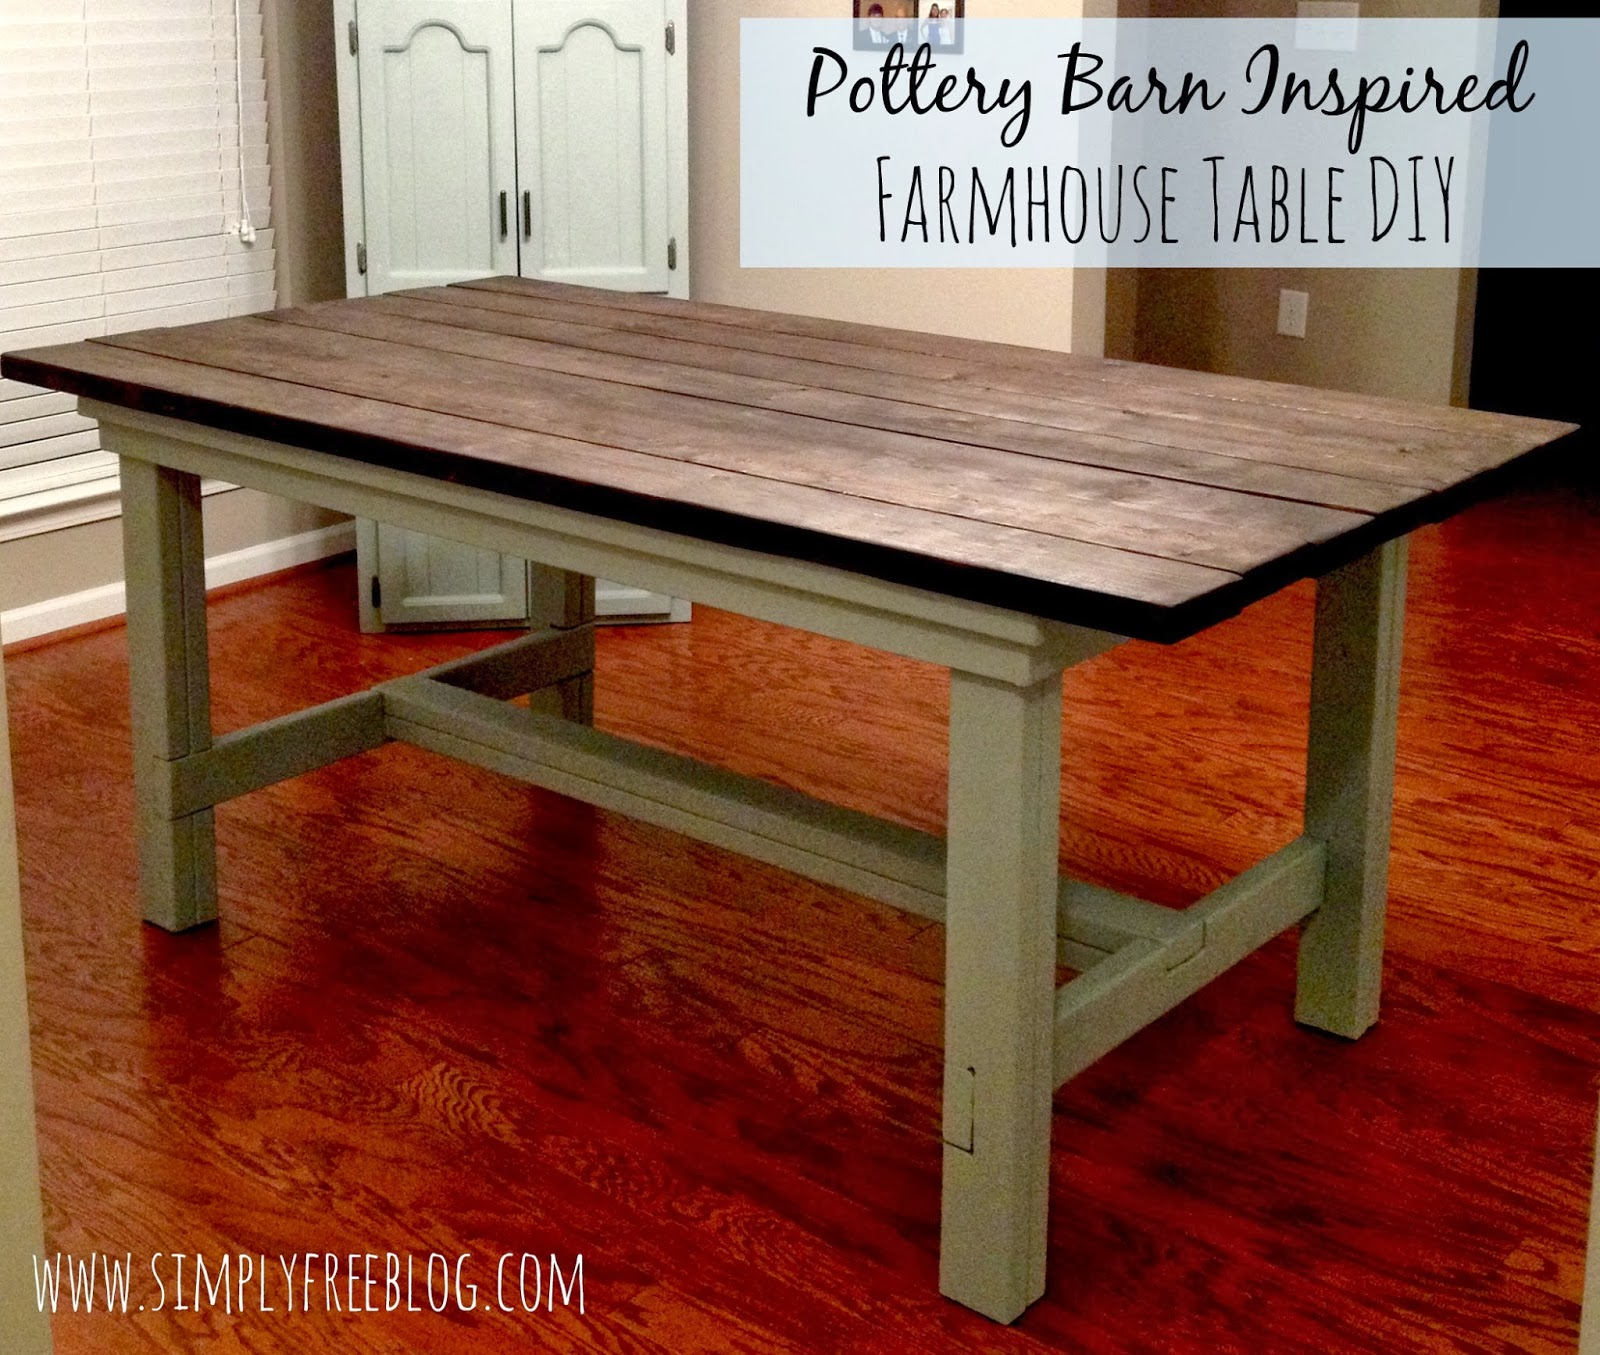 Pottery barn inspired farmhouse table diy simply elliott Diy farmhouse table